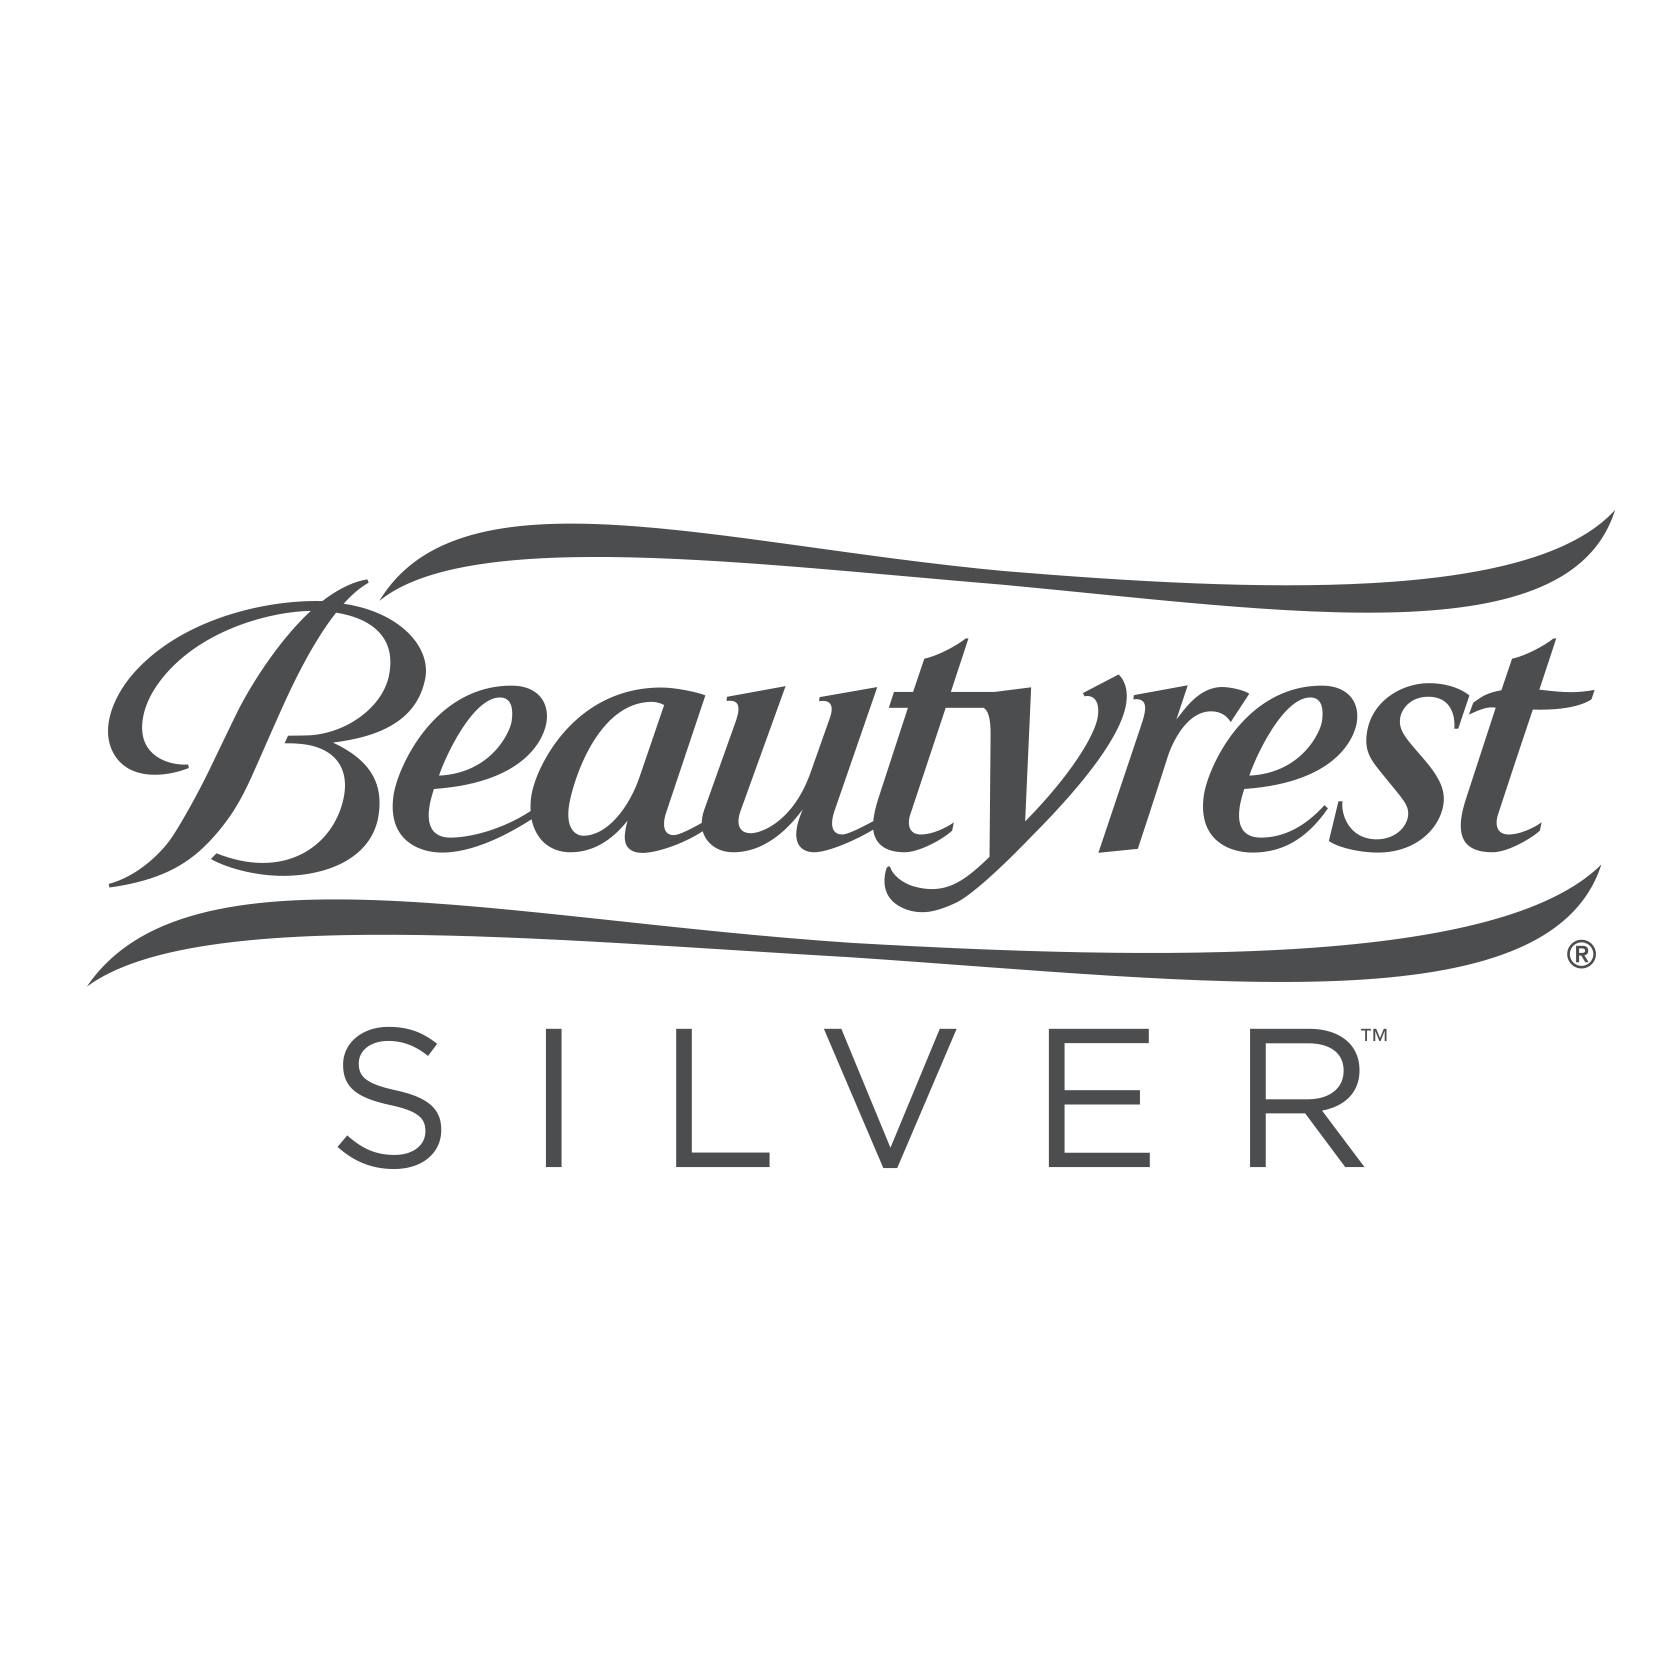 Simmons Beautyrest Silver Mattresses For Sale in Maryland.